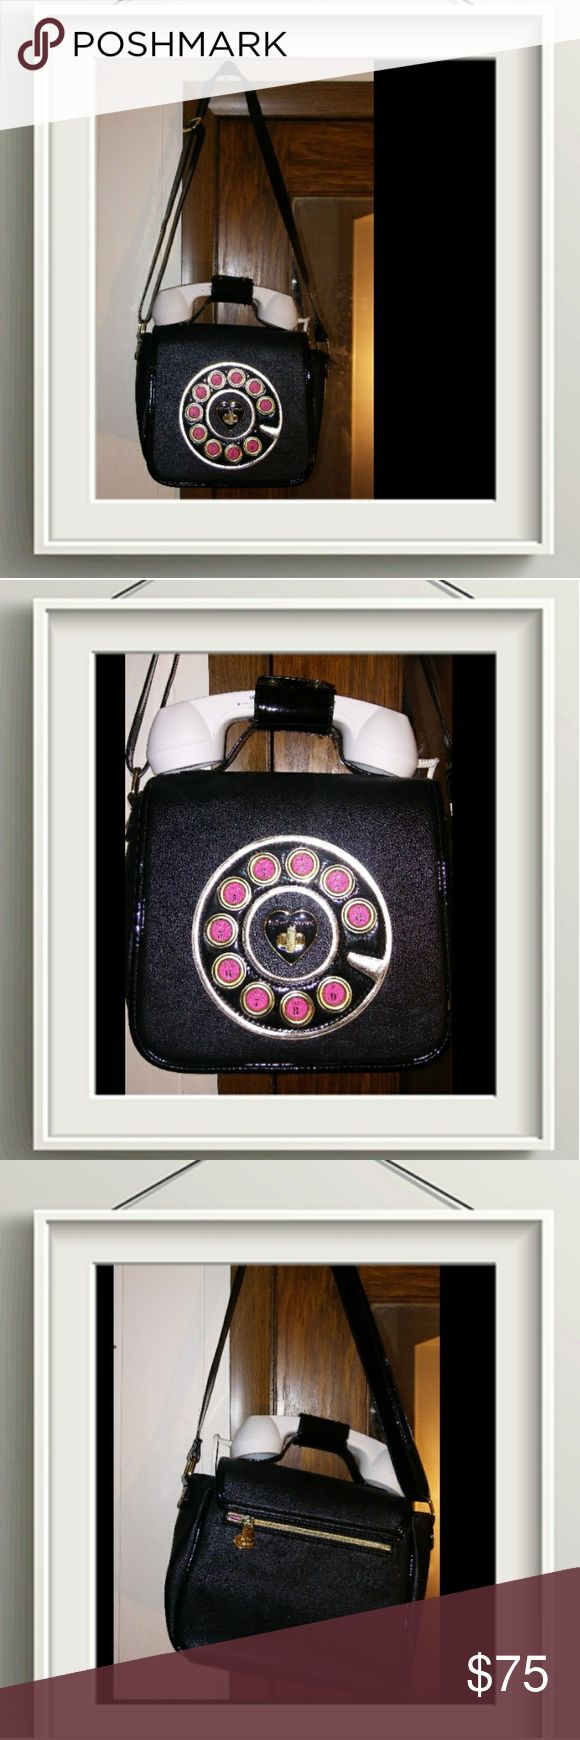 ✴New✴Black /white Betsey Johnson phone purse ✴New✴ without tags cute black /white Betsey Johnson phone purse with a white phone receiver that really works it can plug into any cell phone ! the interior of the purse has this pretty pink roses material.Reasonable offers considered. Betsey Johnson Bags Shoulder Bags